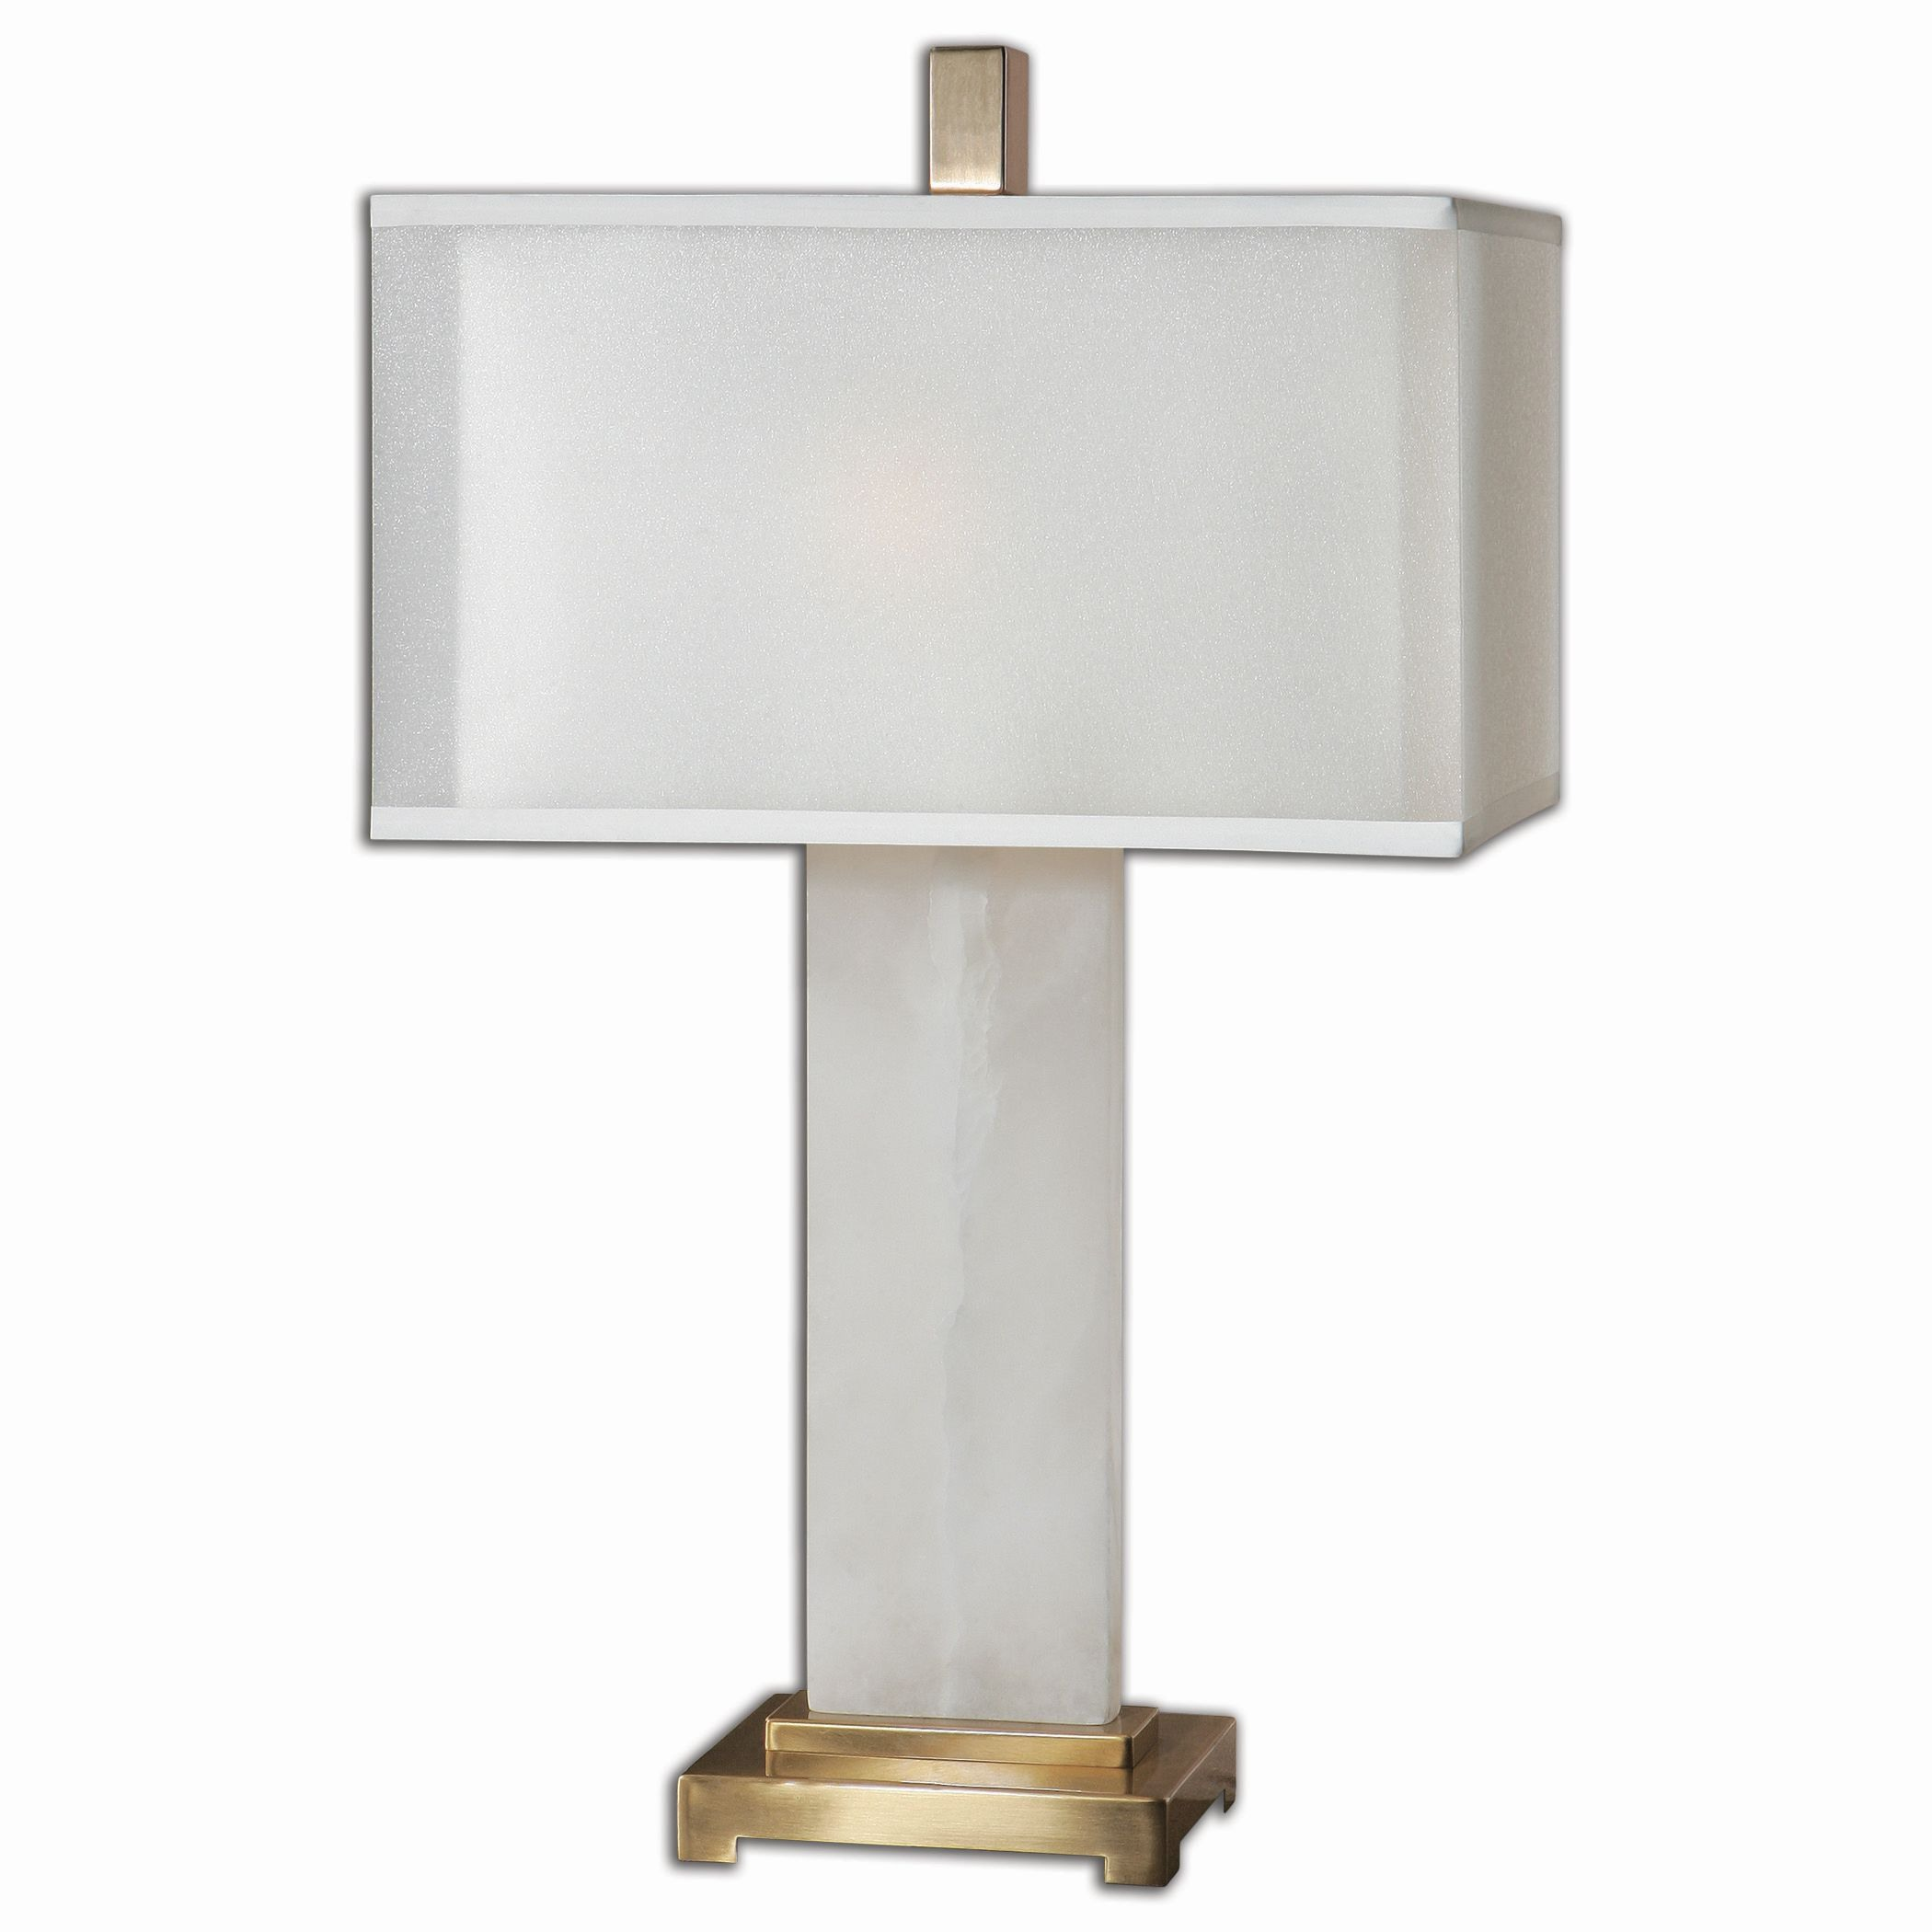 Uttermost-26136-1-Athanas - 2 Light Table Lamp  White Alabaster/Plated Coffee Bronze Finish with White Linen Sheer Shade